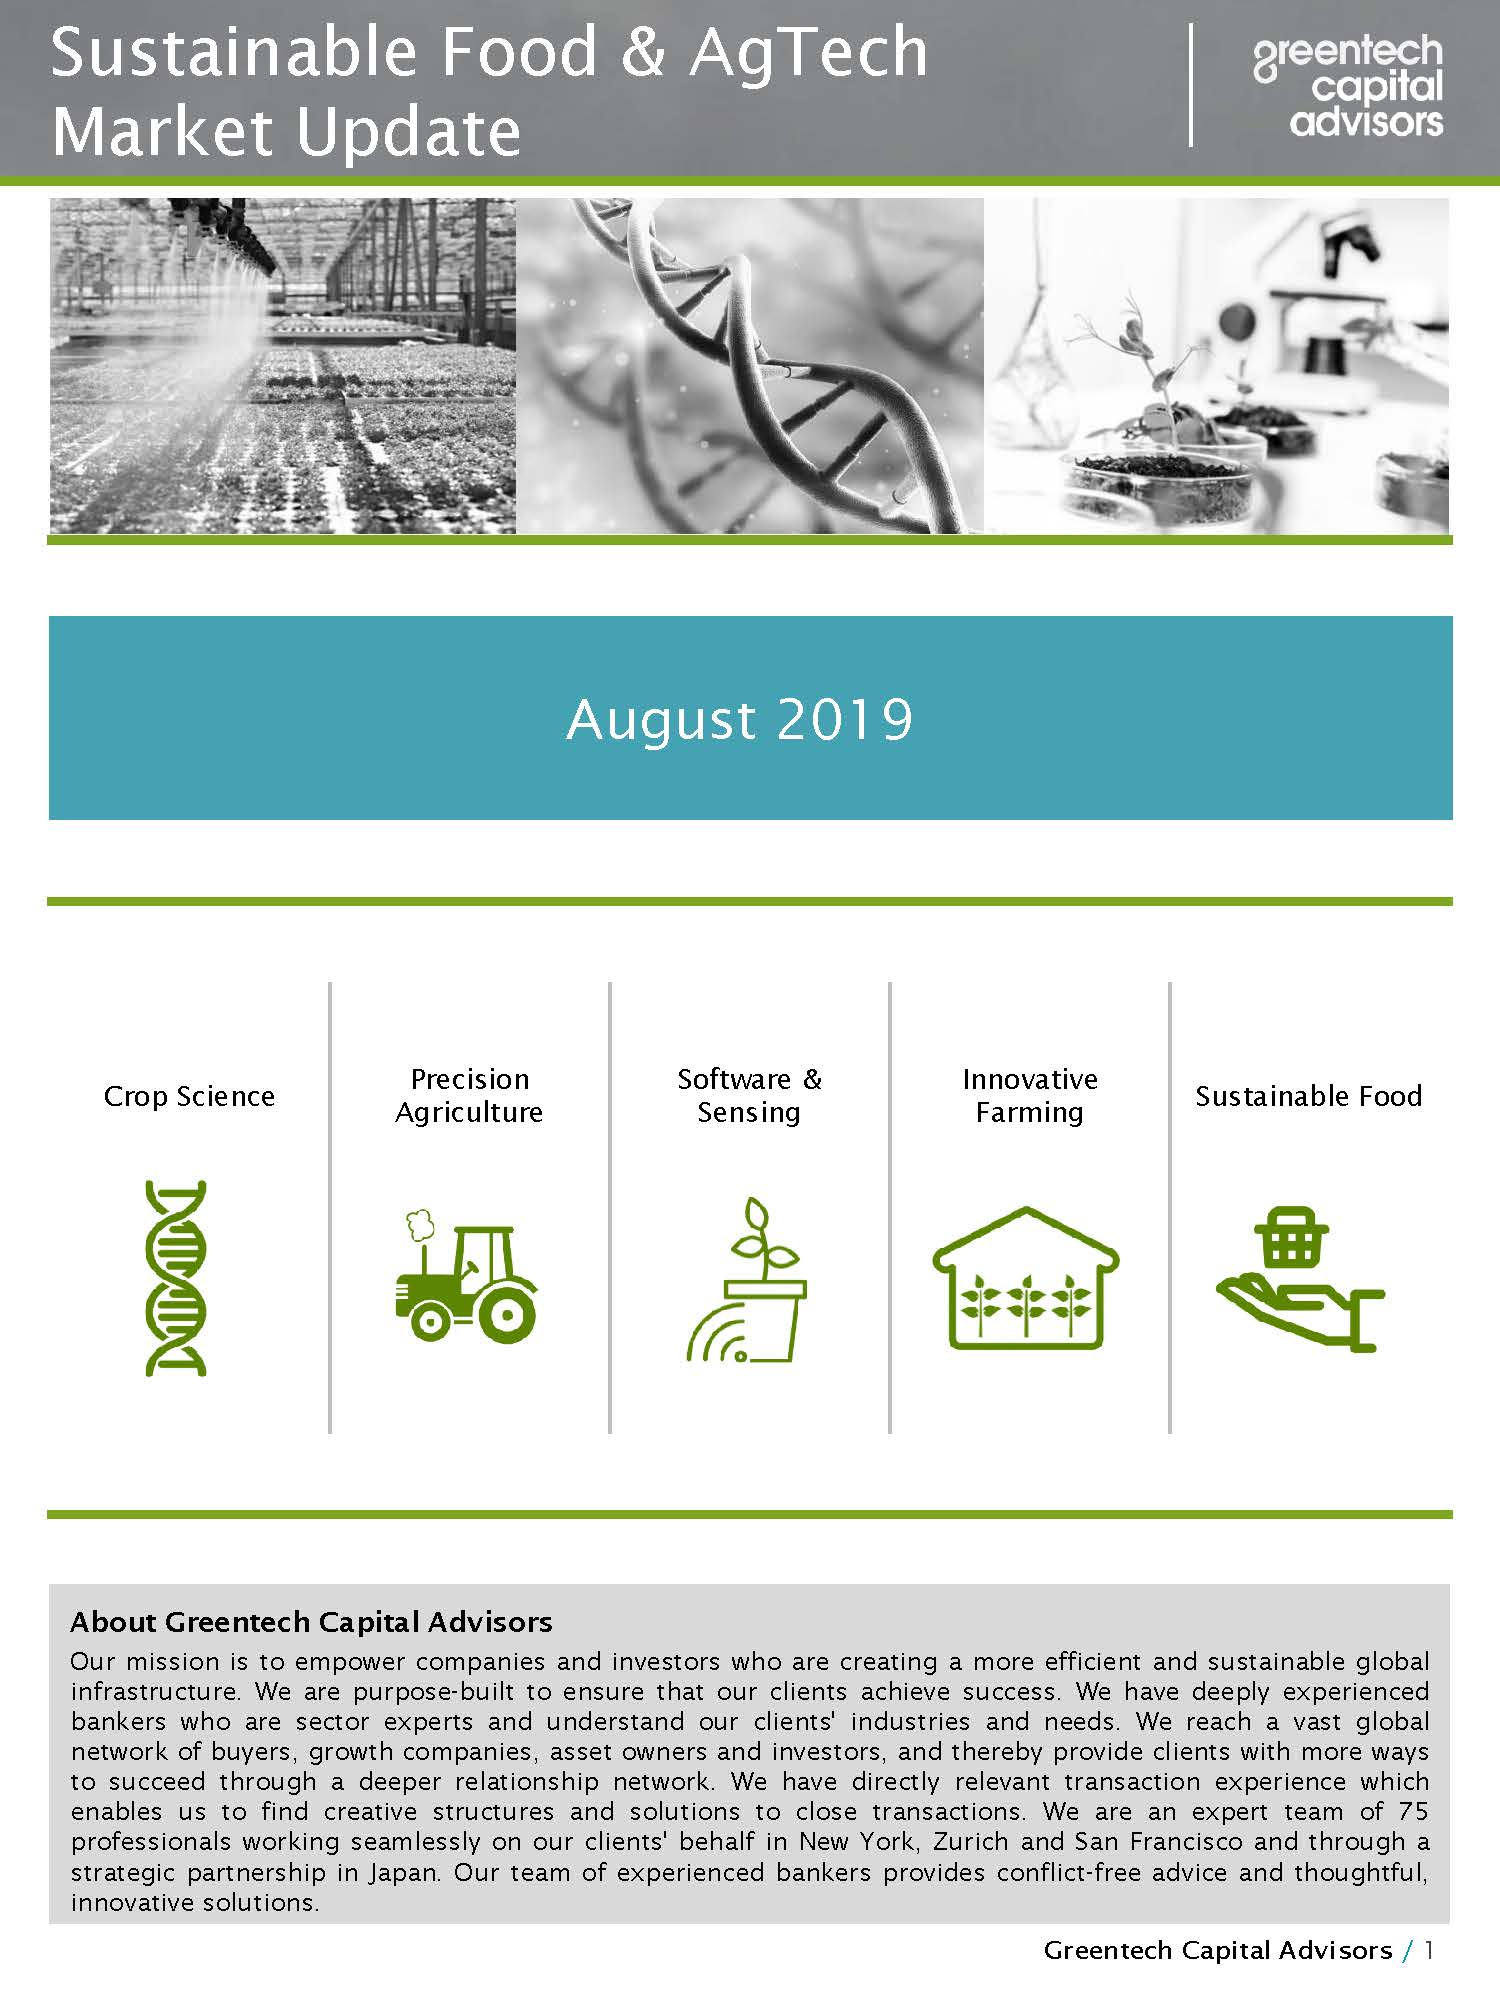 Sustainable Food & AgTech Market Update Newsletter - August 2019